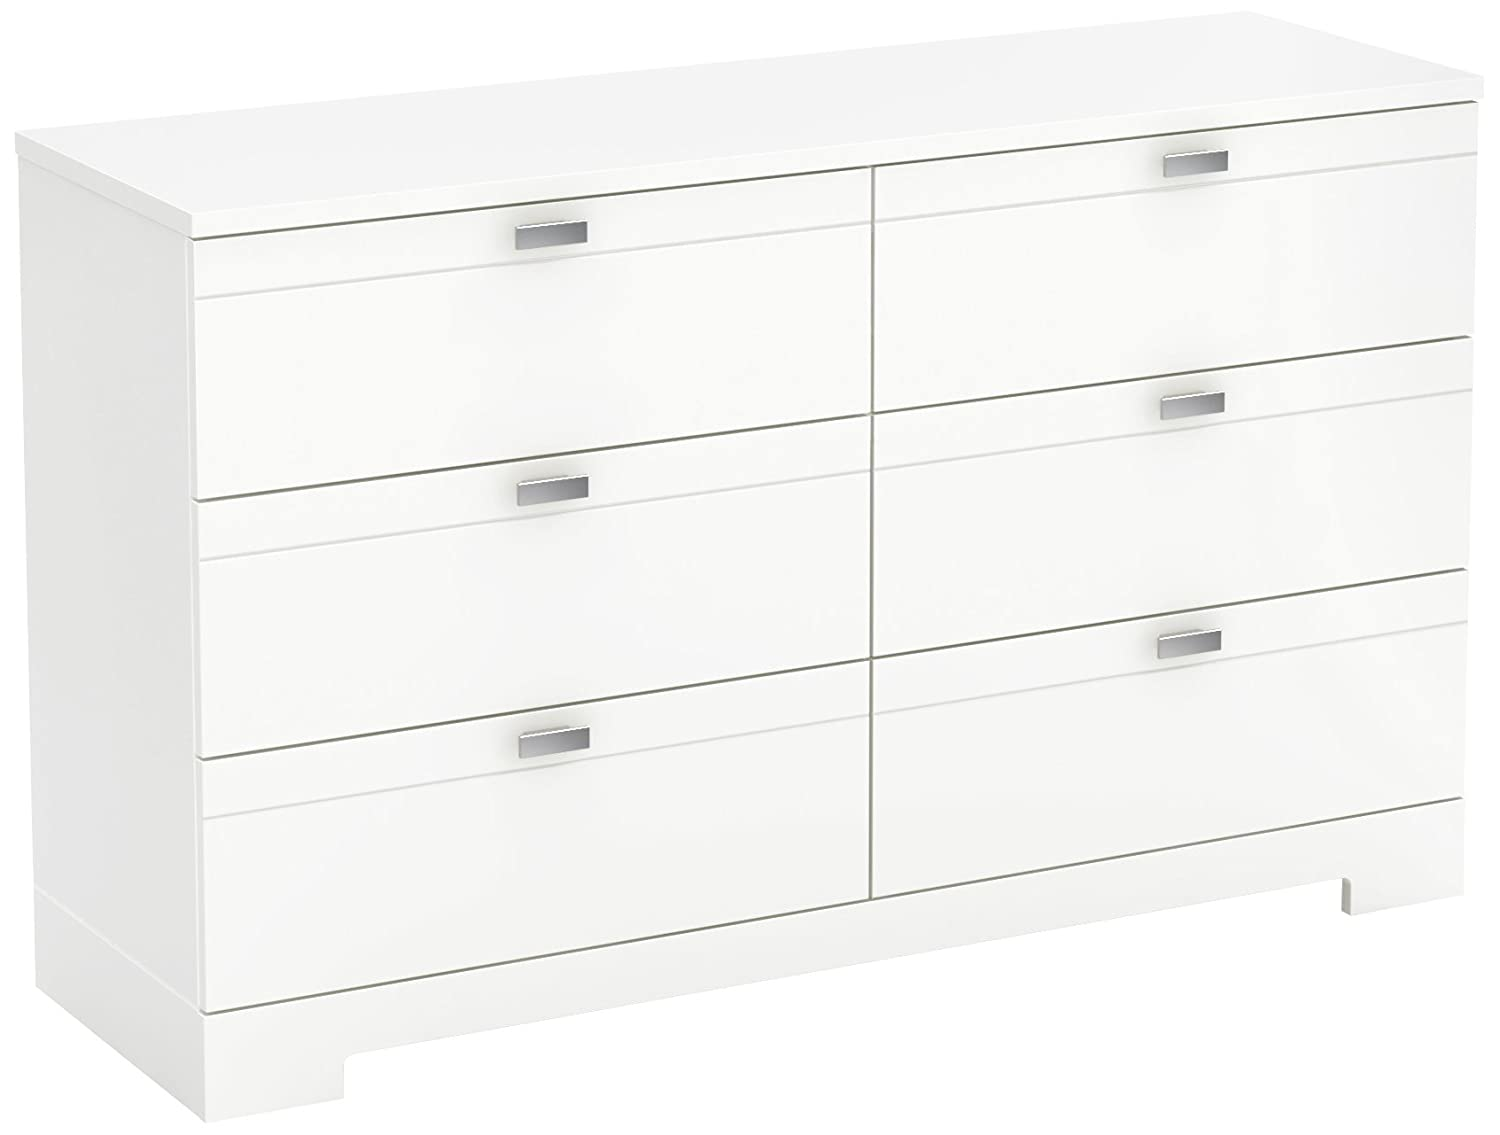 shore one id south black ssf dresser product enlarge in click step drawer to